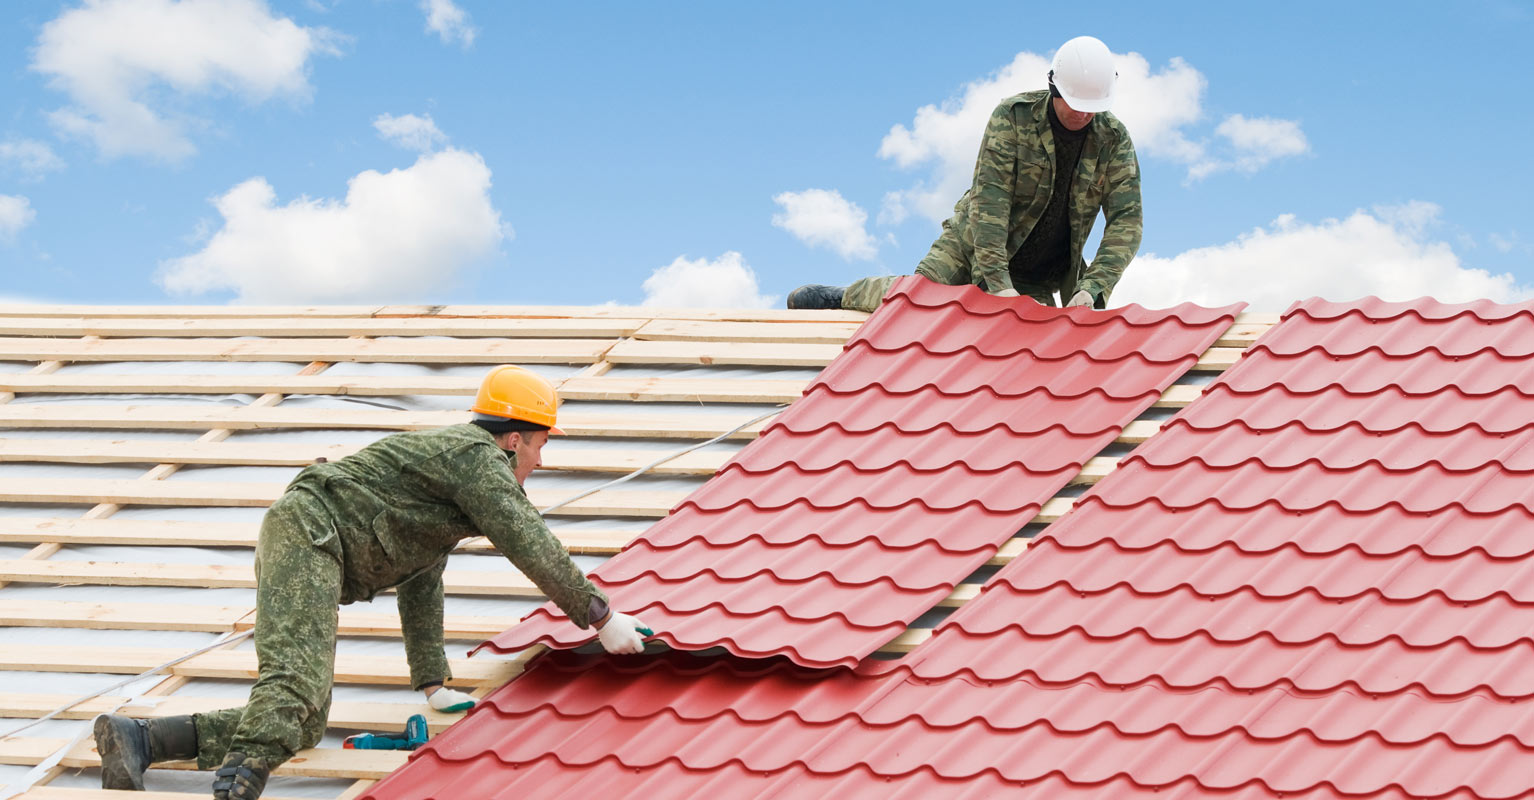 considerations for a metal roof